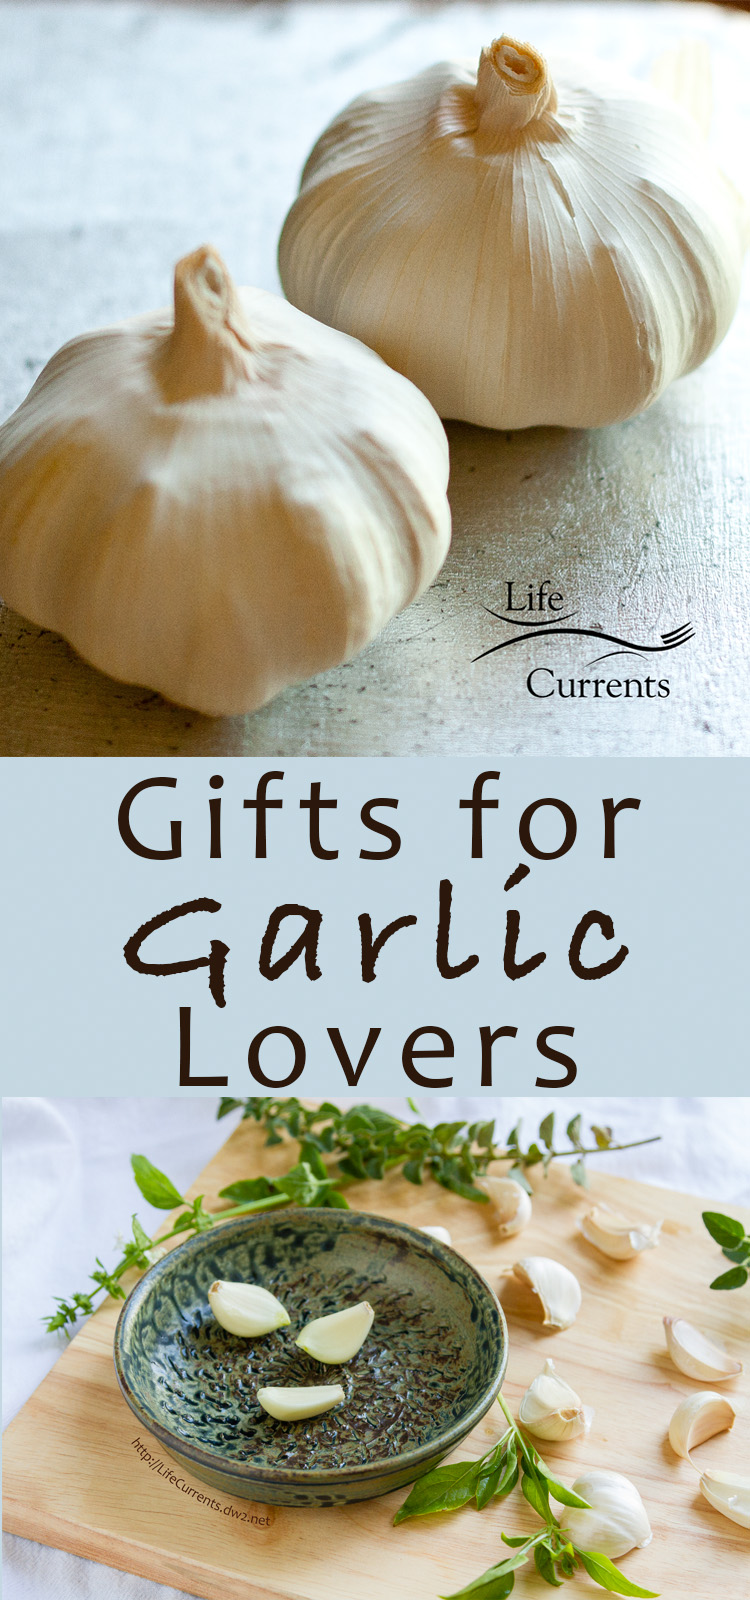 Gifts for Garlic Lovers - a gift guide for all things garlicy